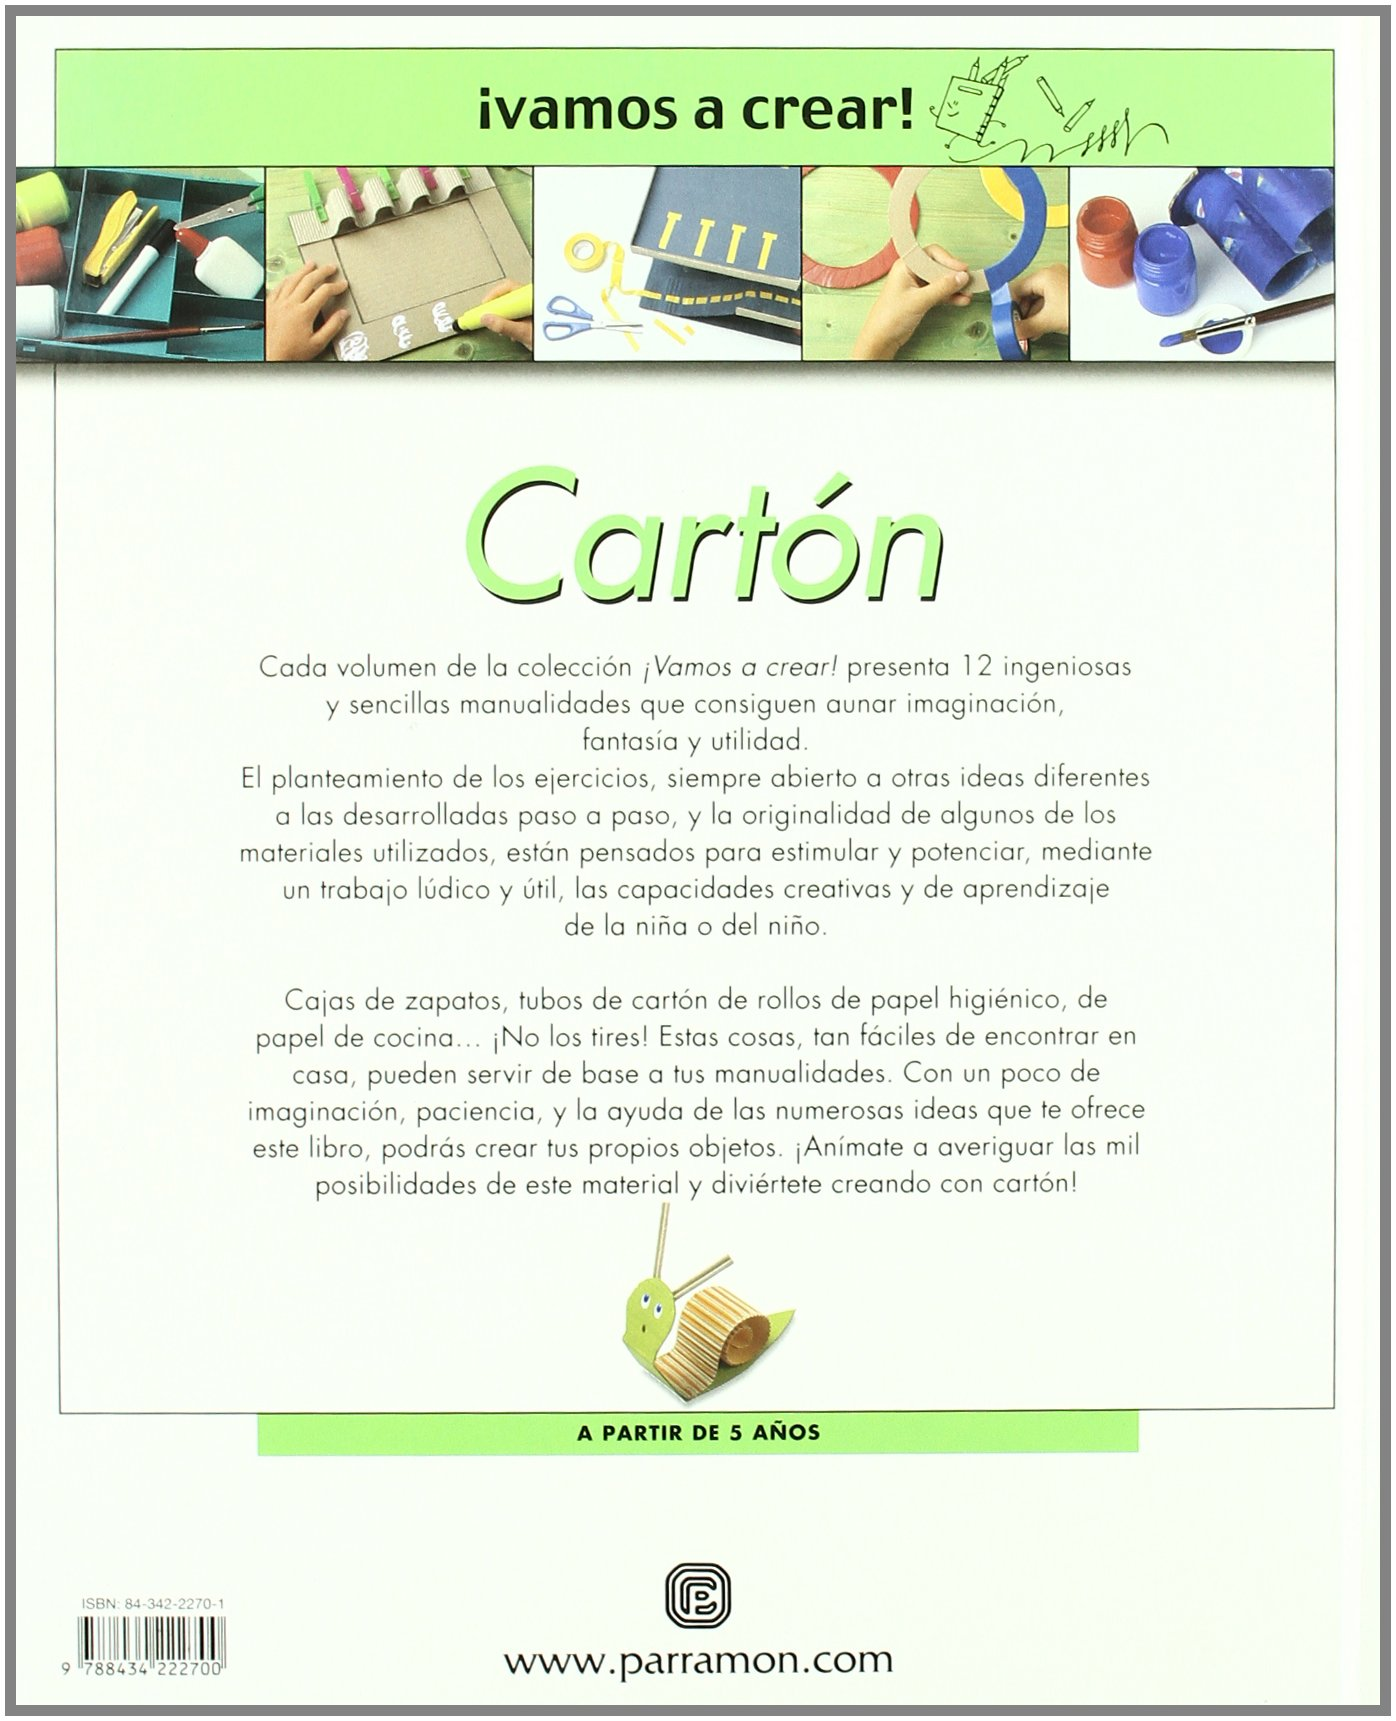 Cartón. vamos a crear (Spanish Edition): Parramon: 9788434222700: Amazon.com: Books